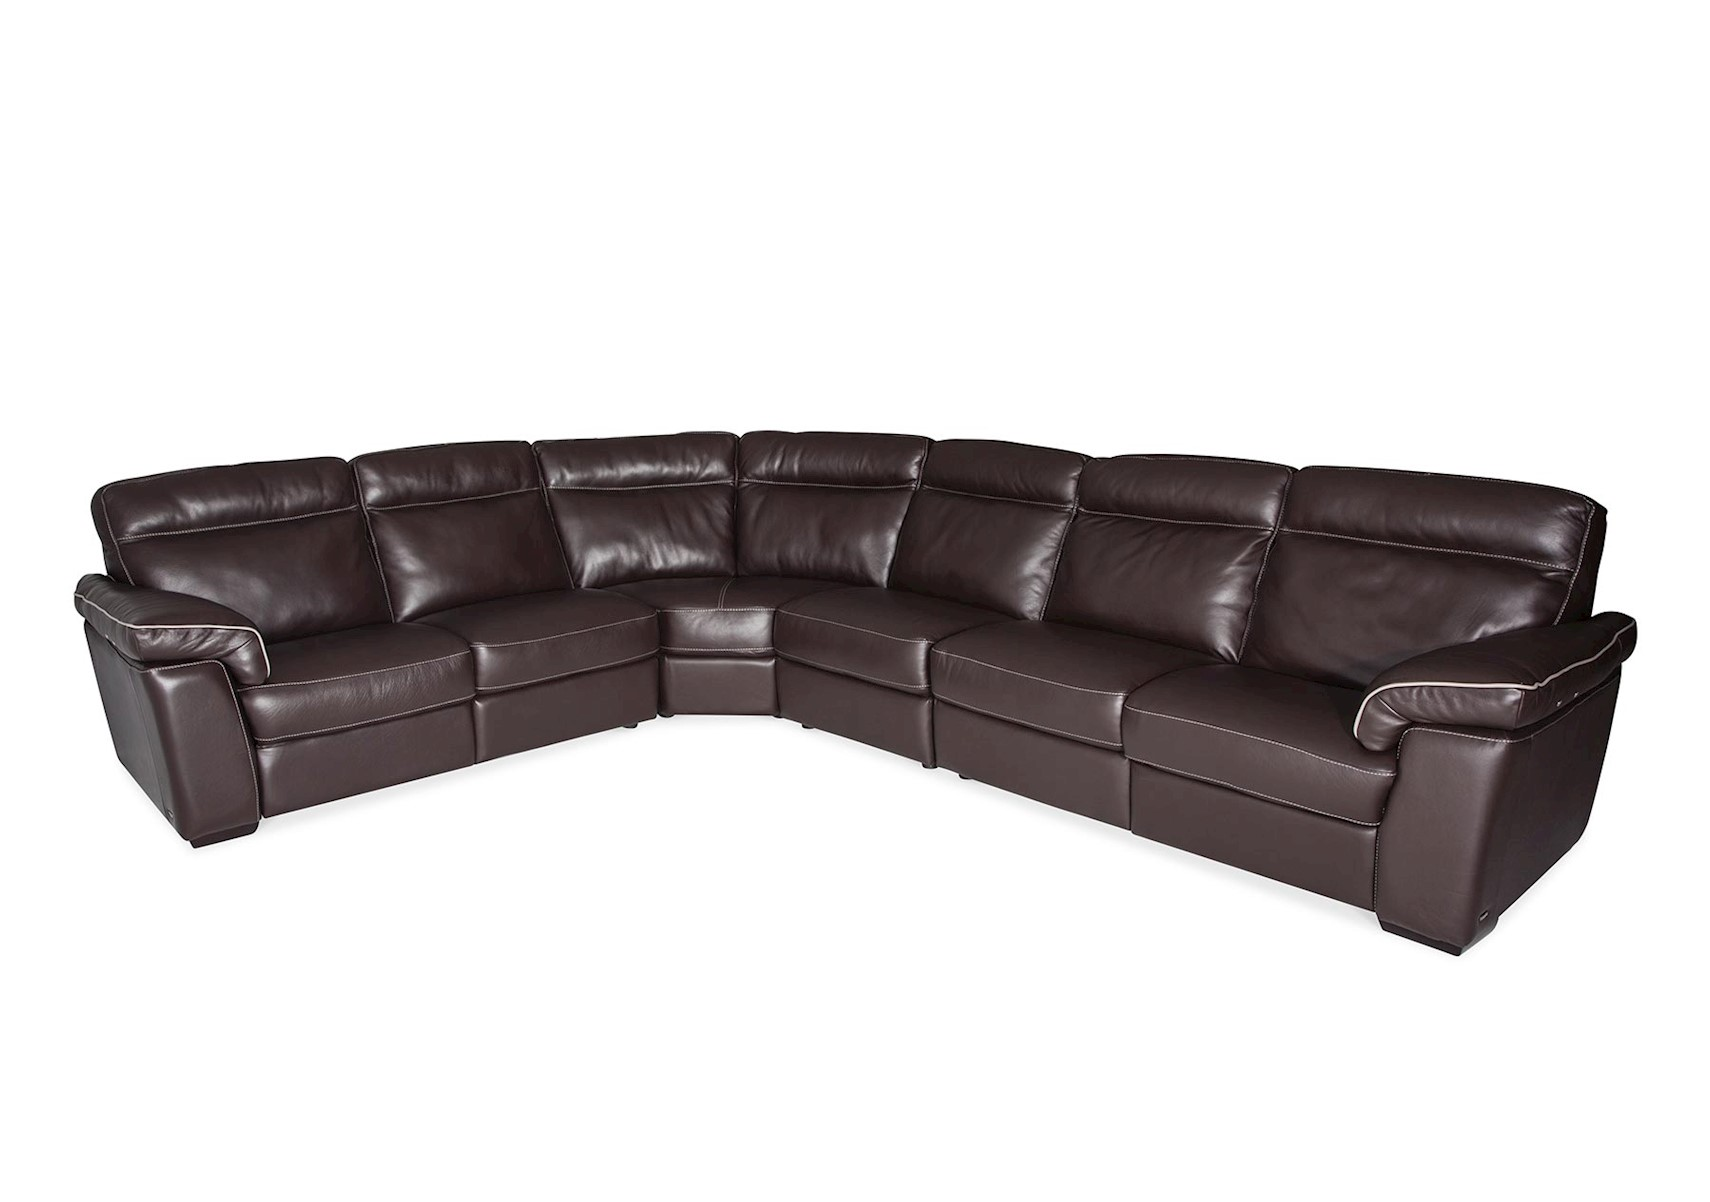 Lucca 3 Pc Leather Sectional